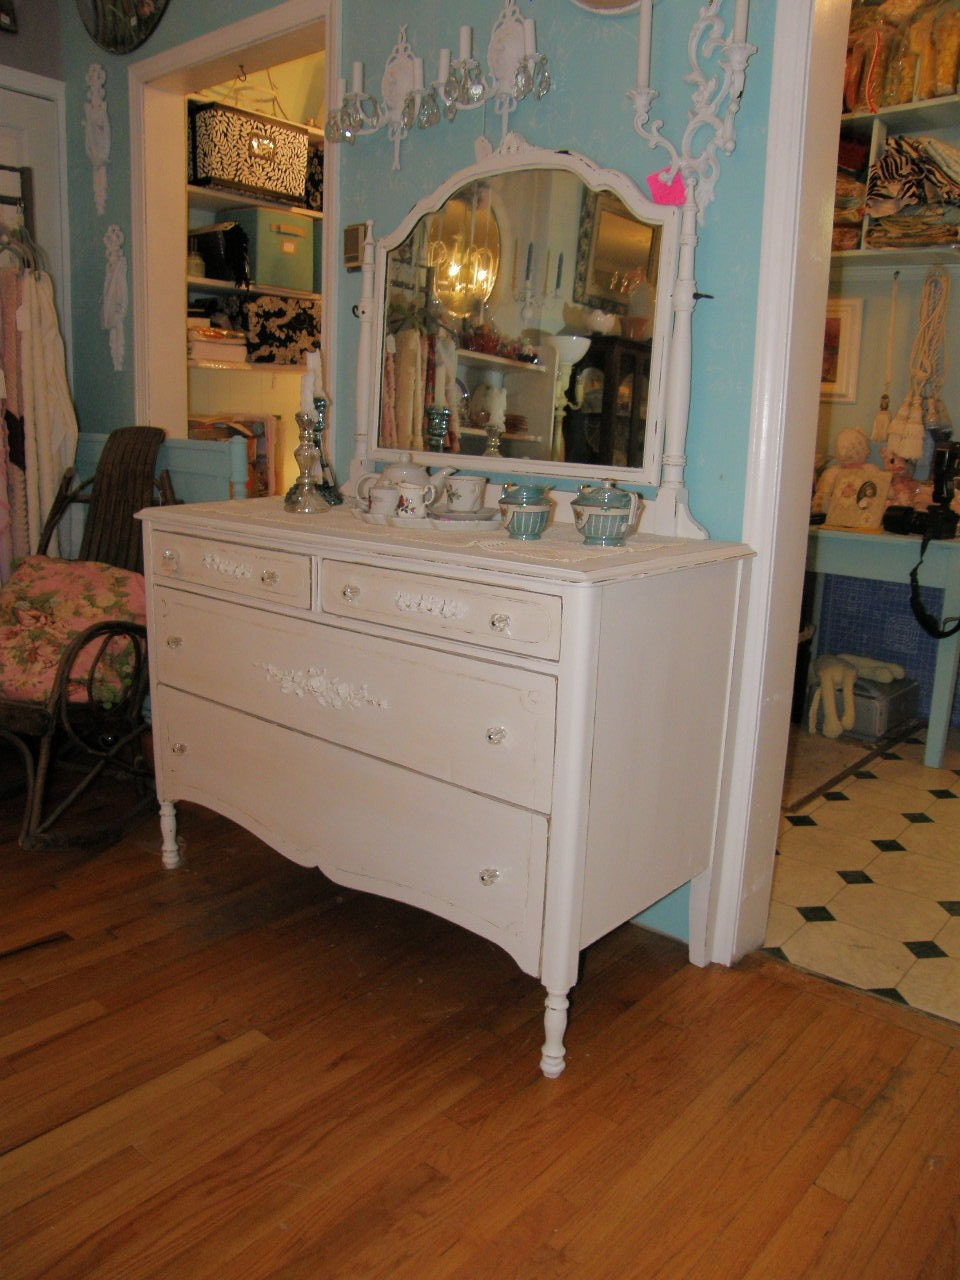 Antique Dresser With Mirror With Rose By Vintagechicfurniture